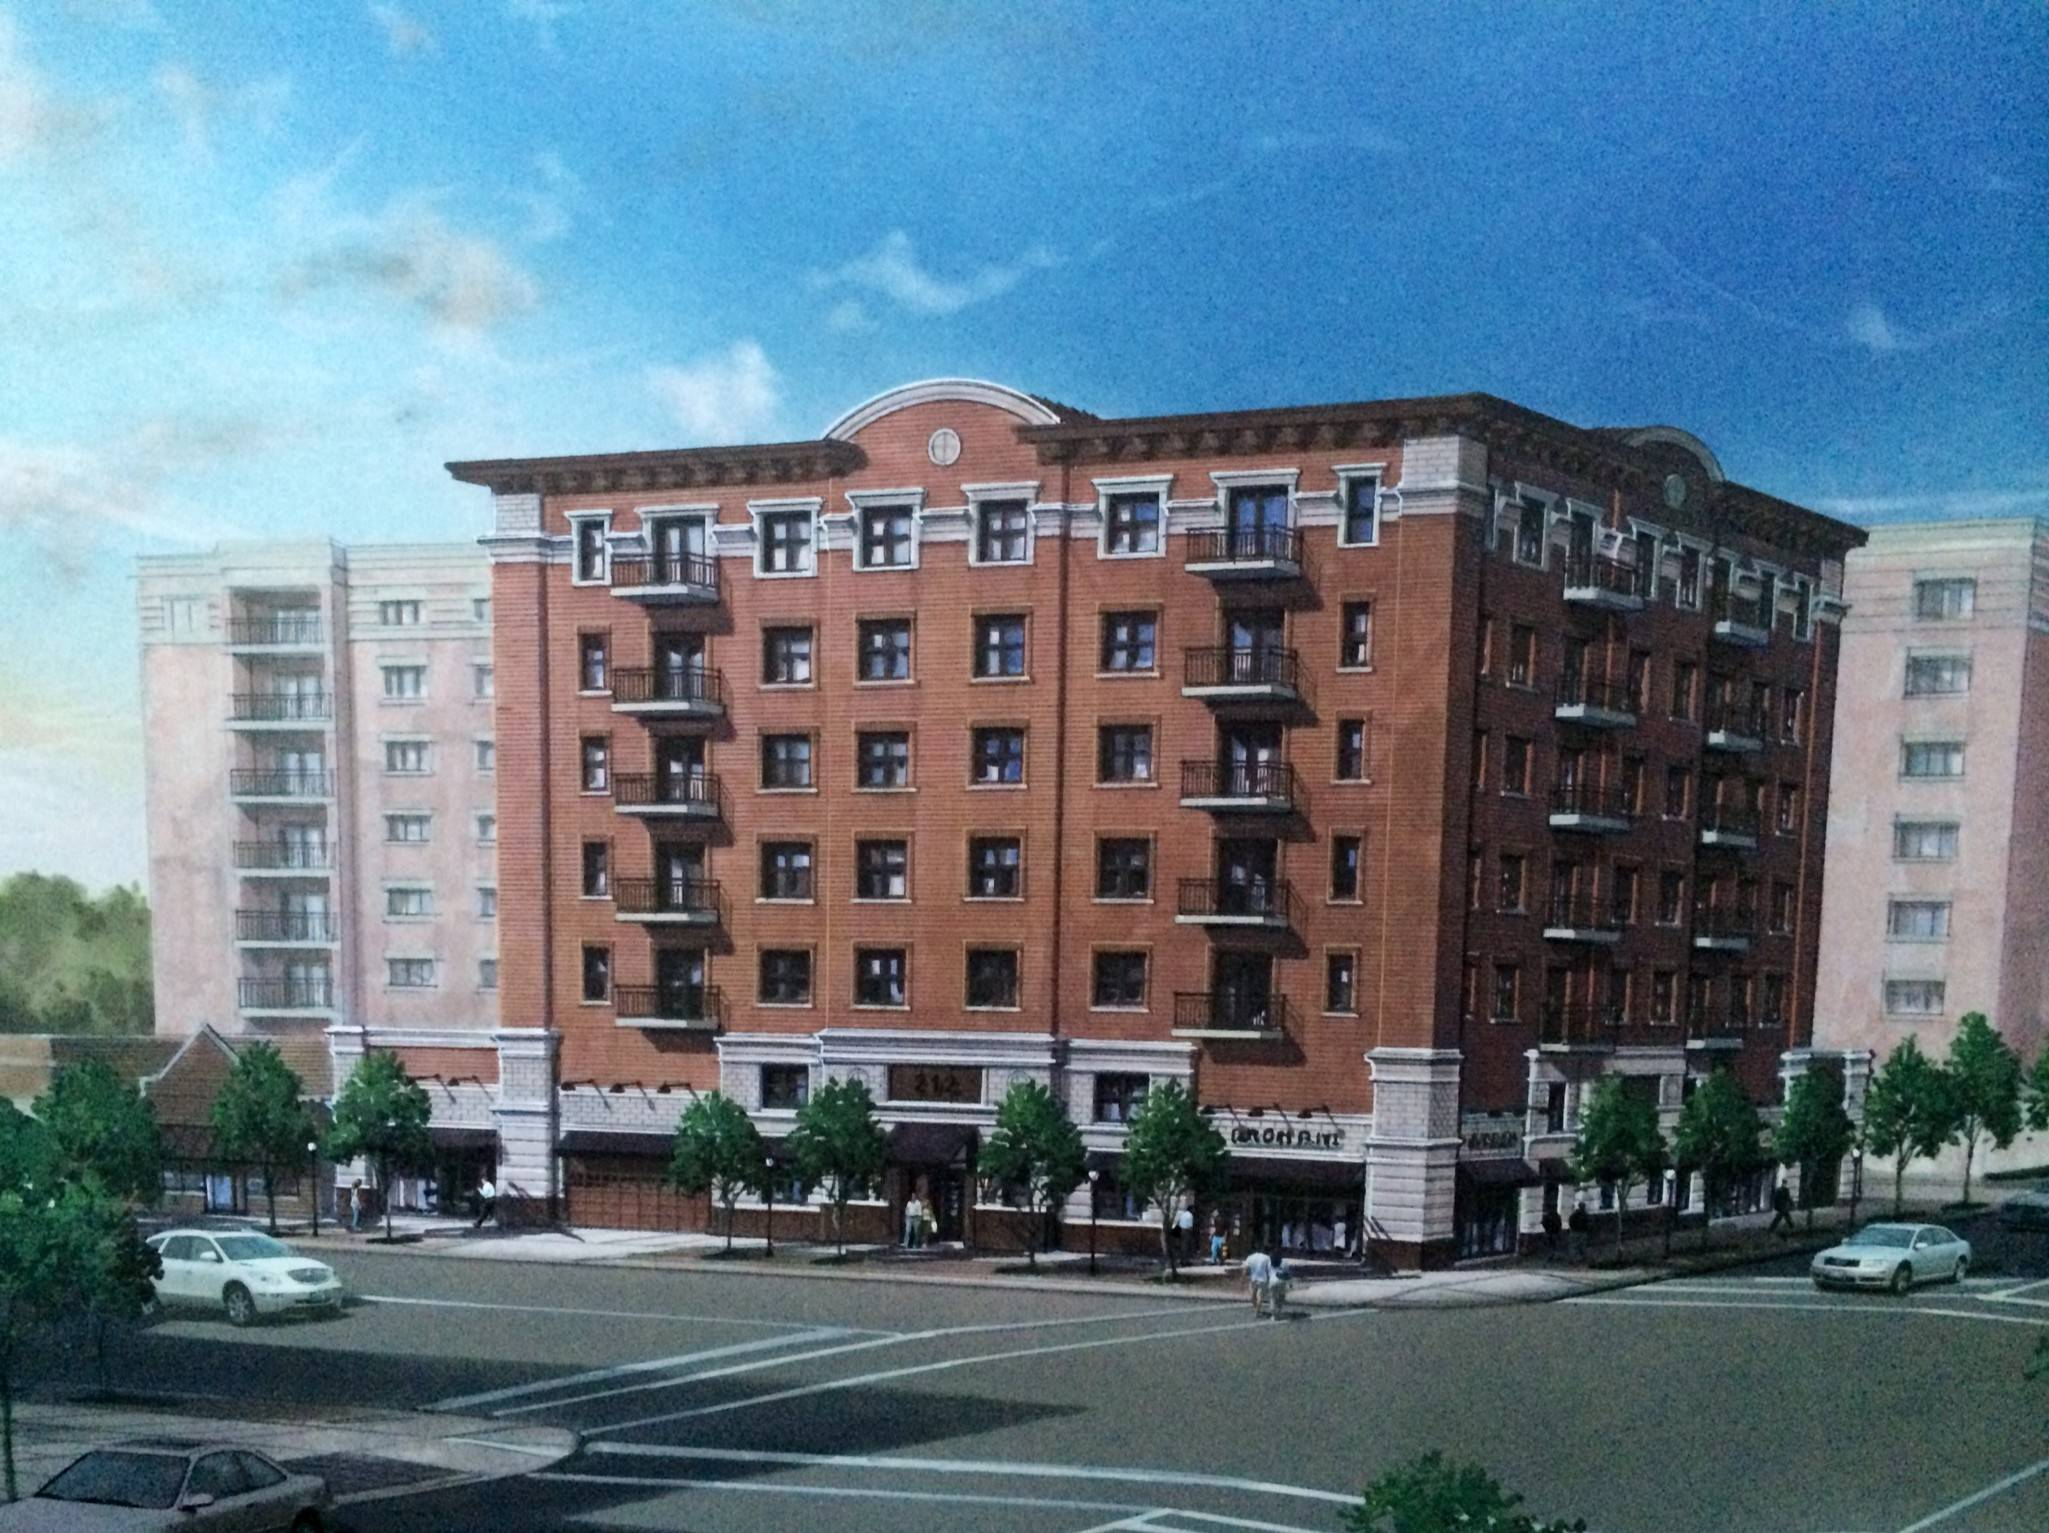 No decision yet on new Arlington Hts. apartment tower